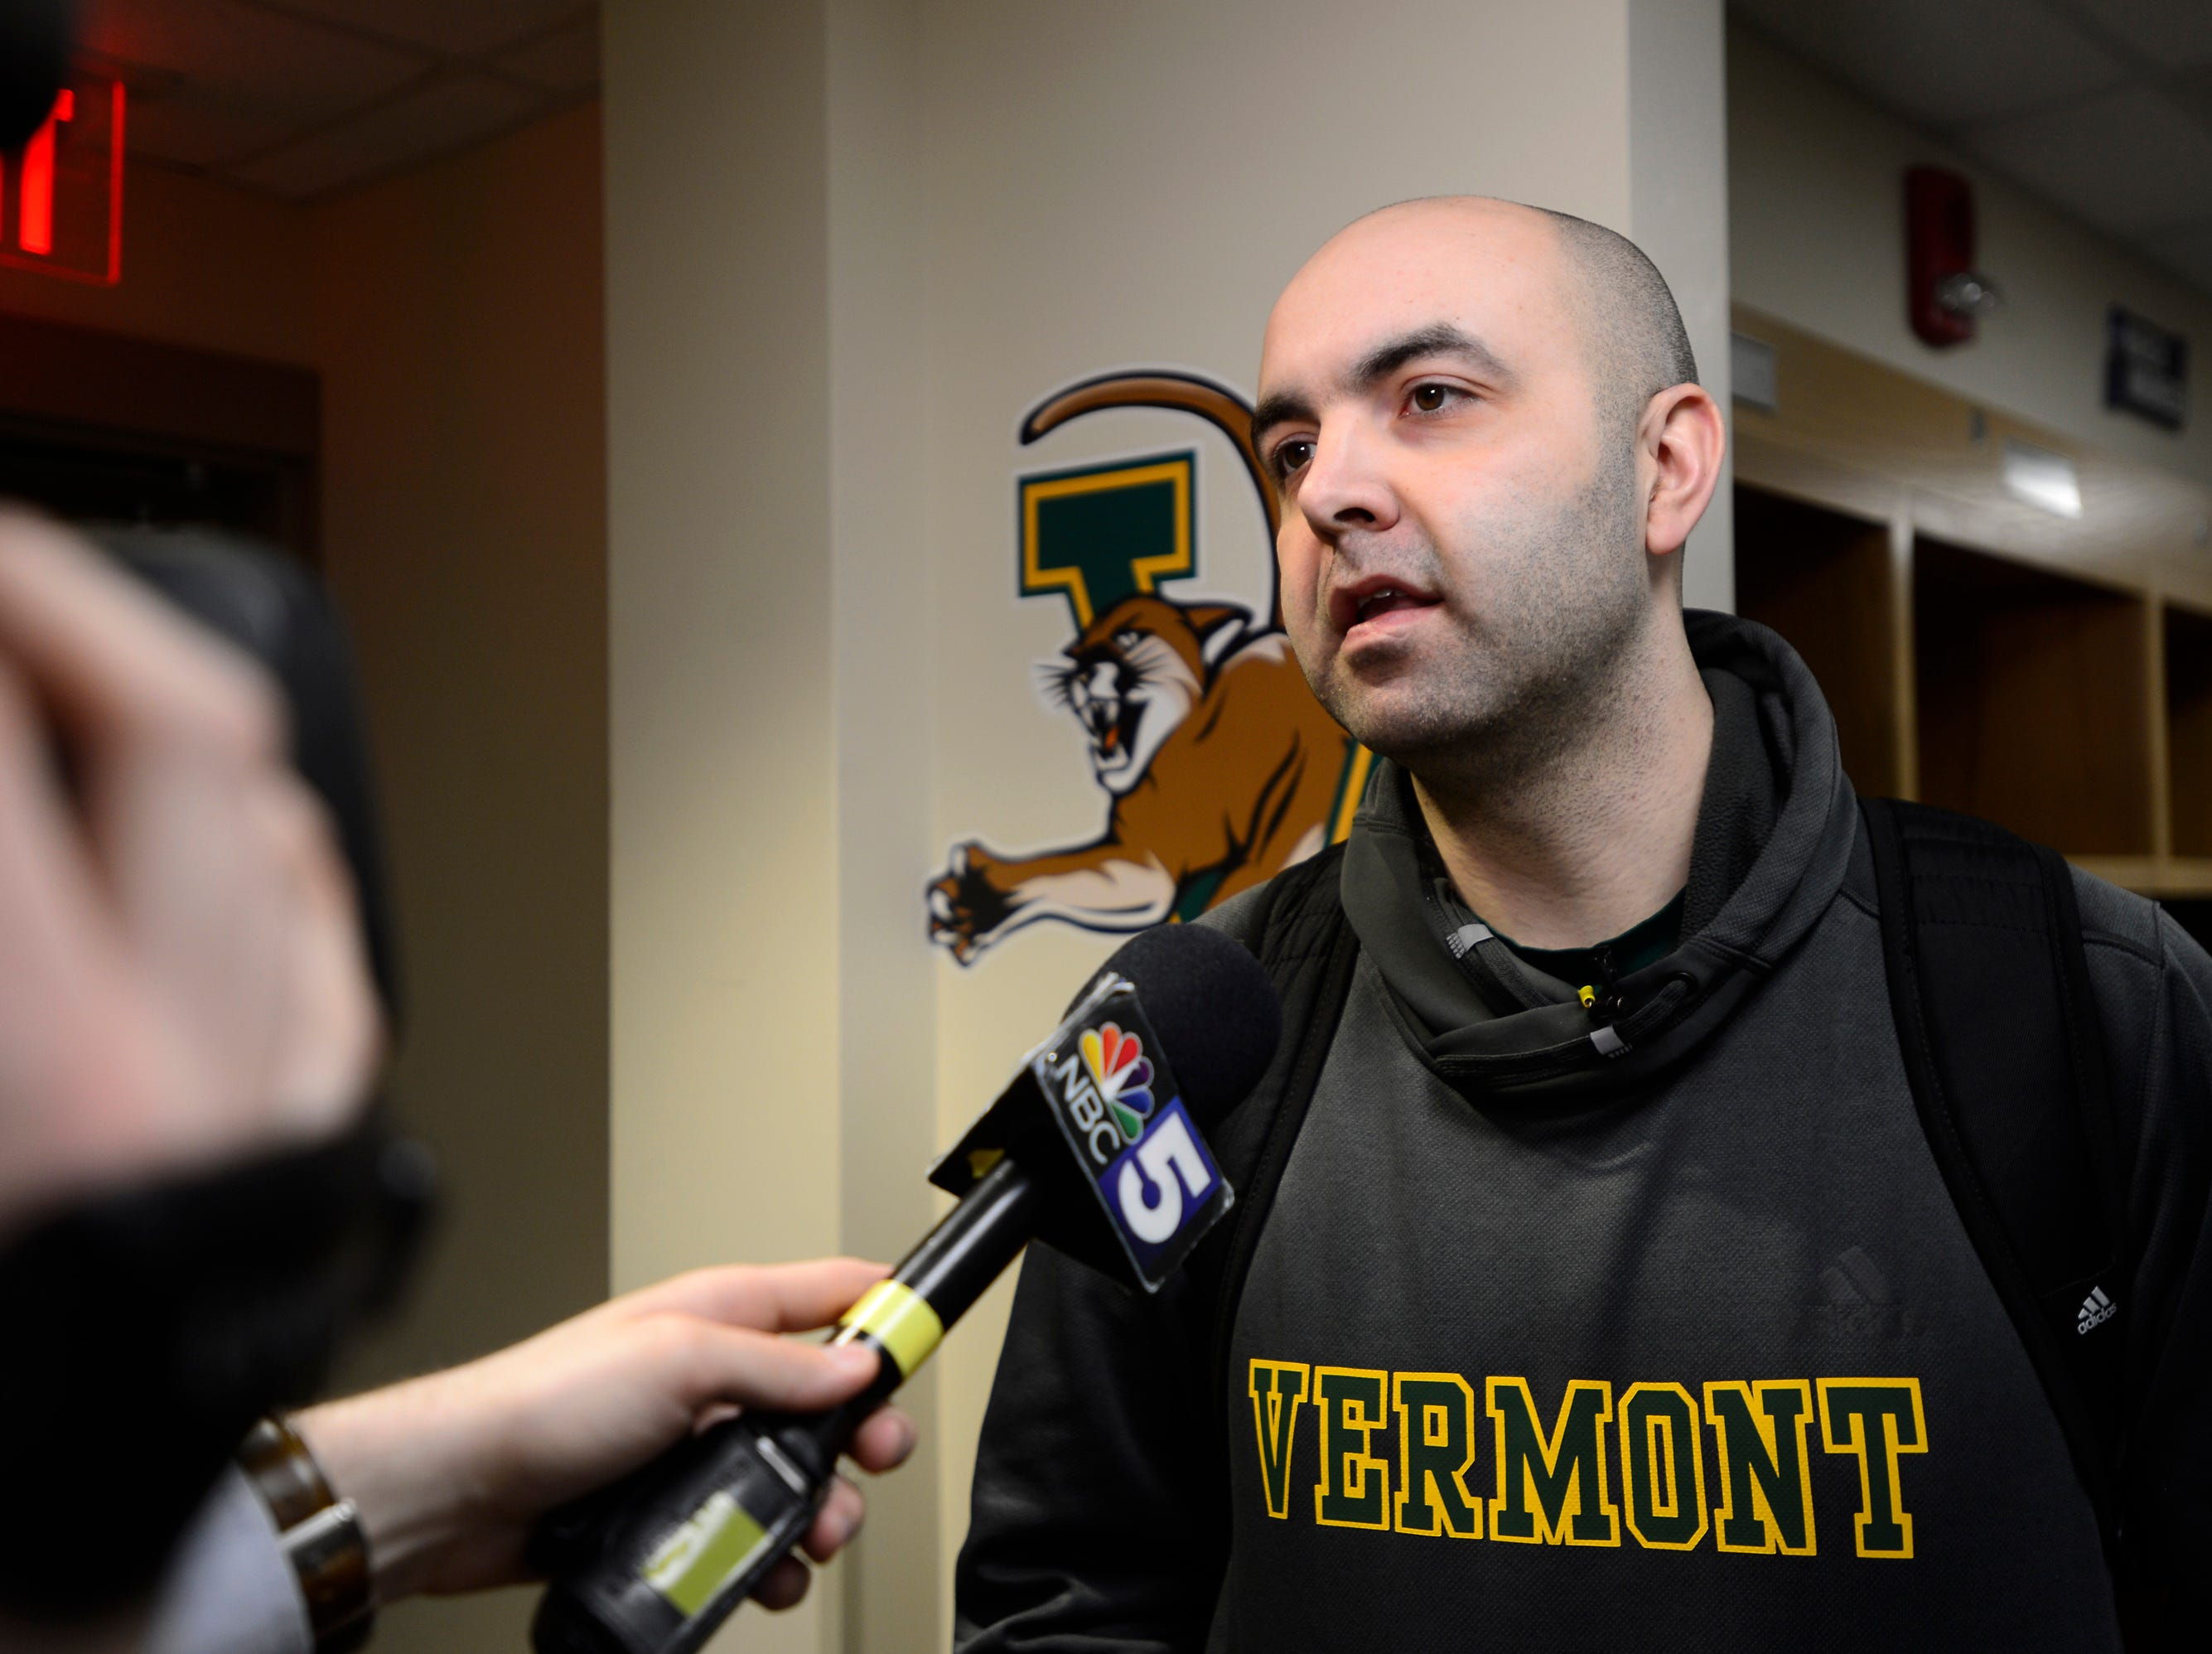 Vermont assistant coach Kyle Cieplicki answers a question in the locker room before the Catamounts' practice Wednesday at the XL Center in Hartford, Connecticut.